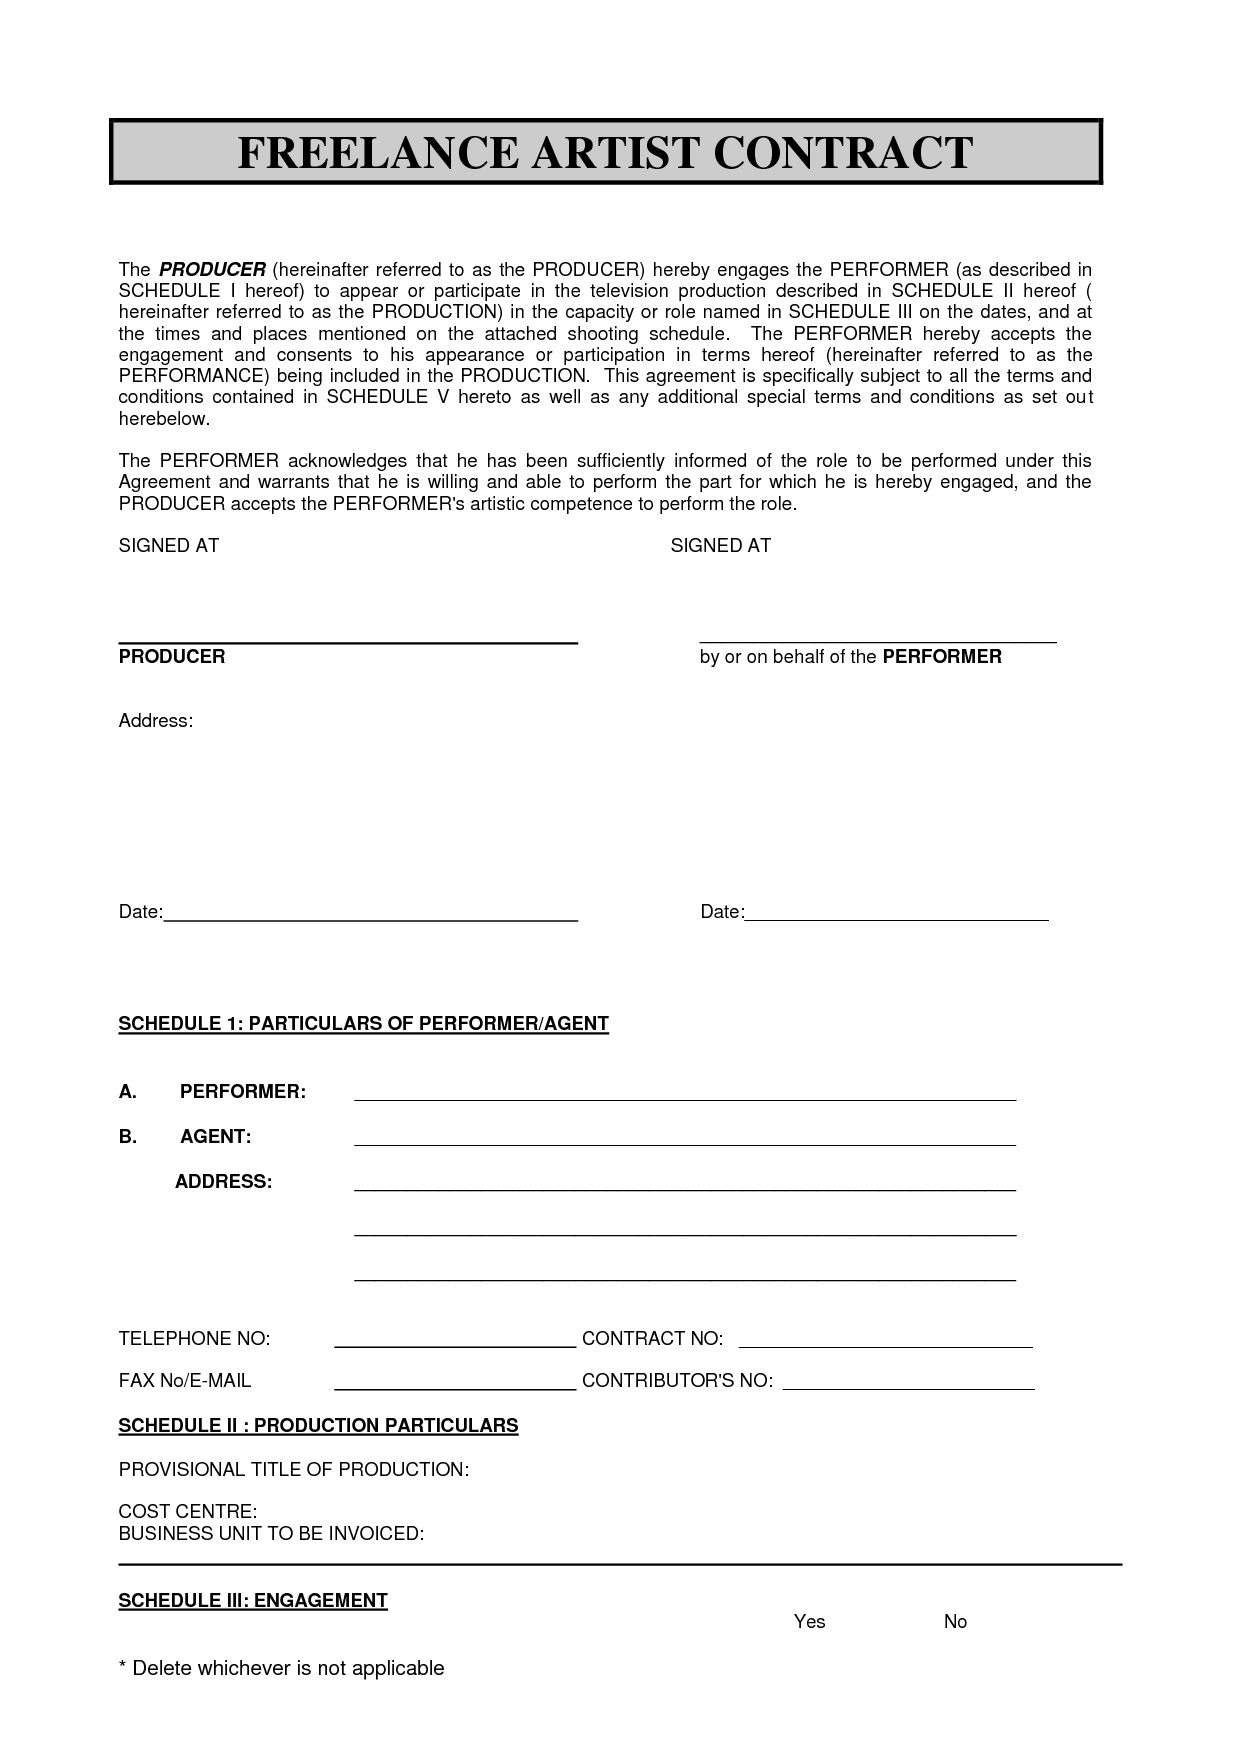 SABC Contract 2010.pdf   FREELANCE ARTIST CONTRACT By Sdsdfqw21   Do You  Want To